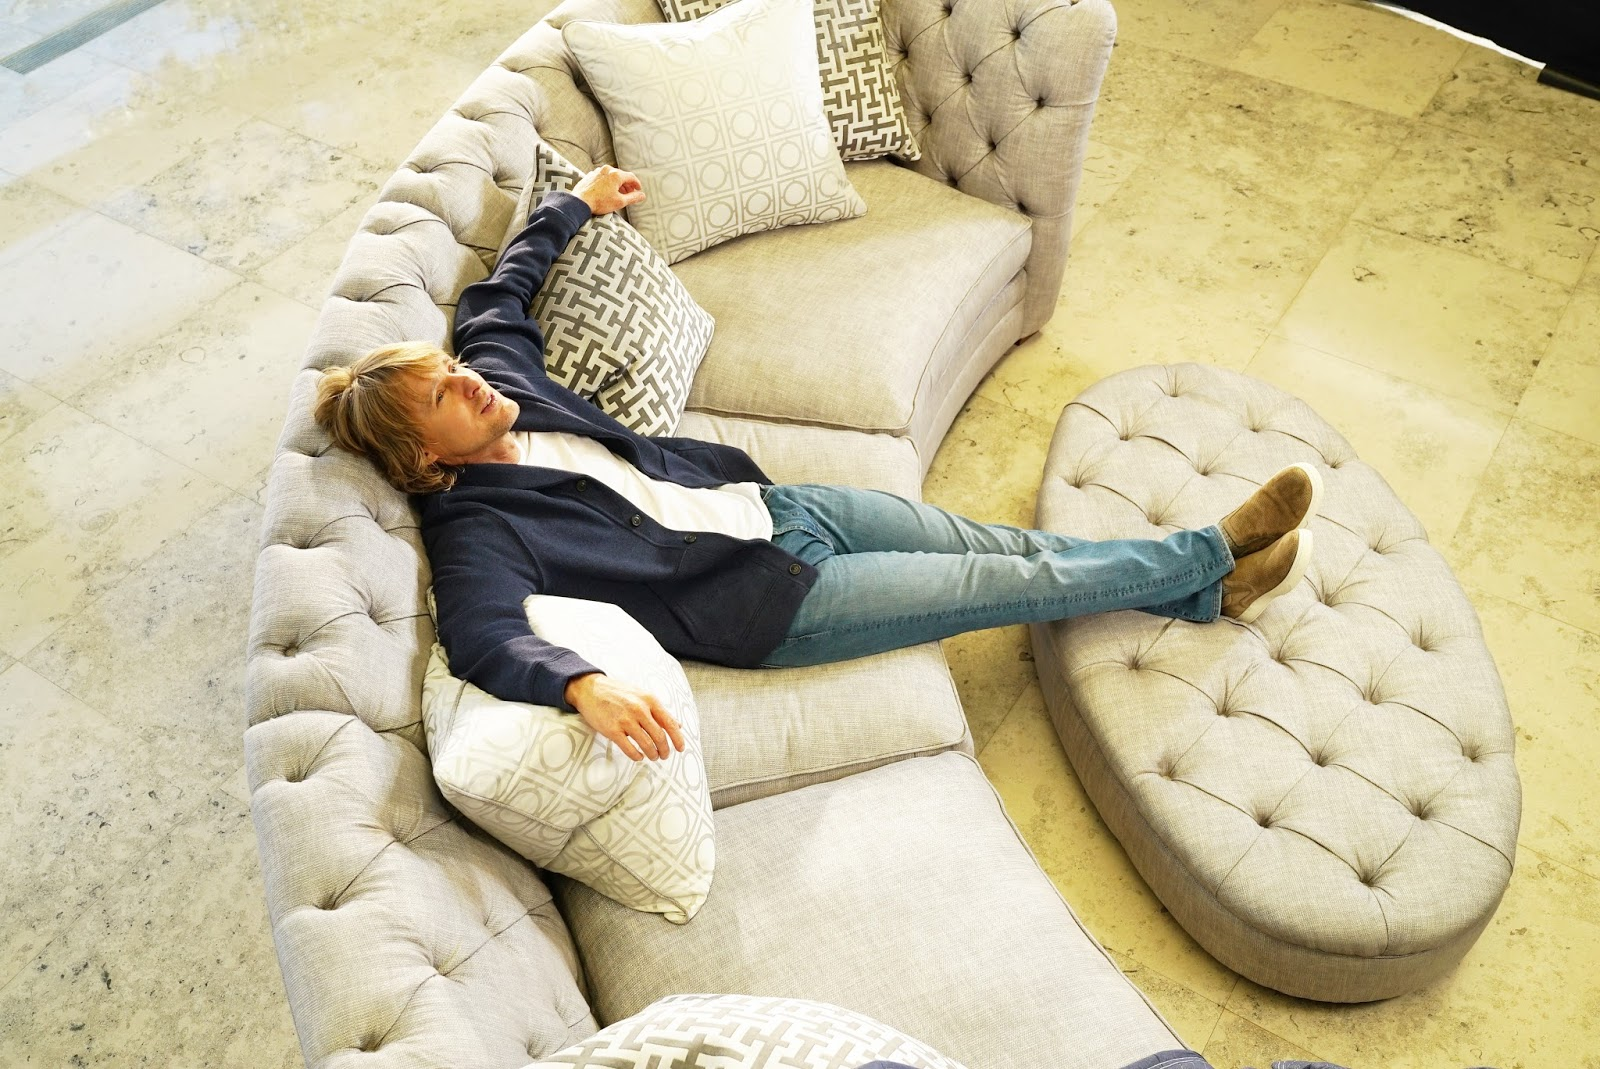 Sofology Online Support Owen Wilson Stars In Sofology S New Brand Campaign Adstasher